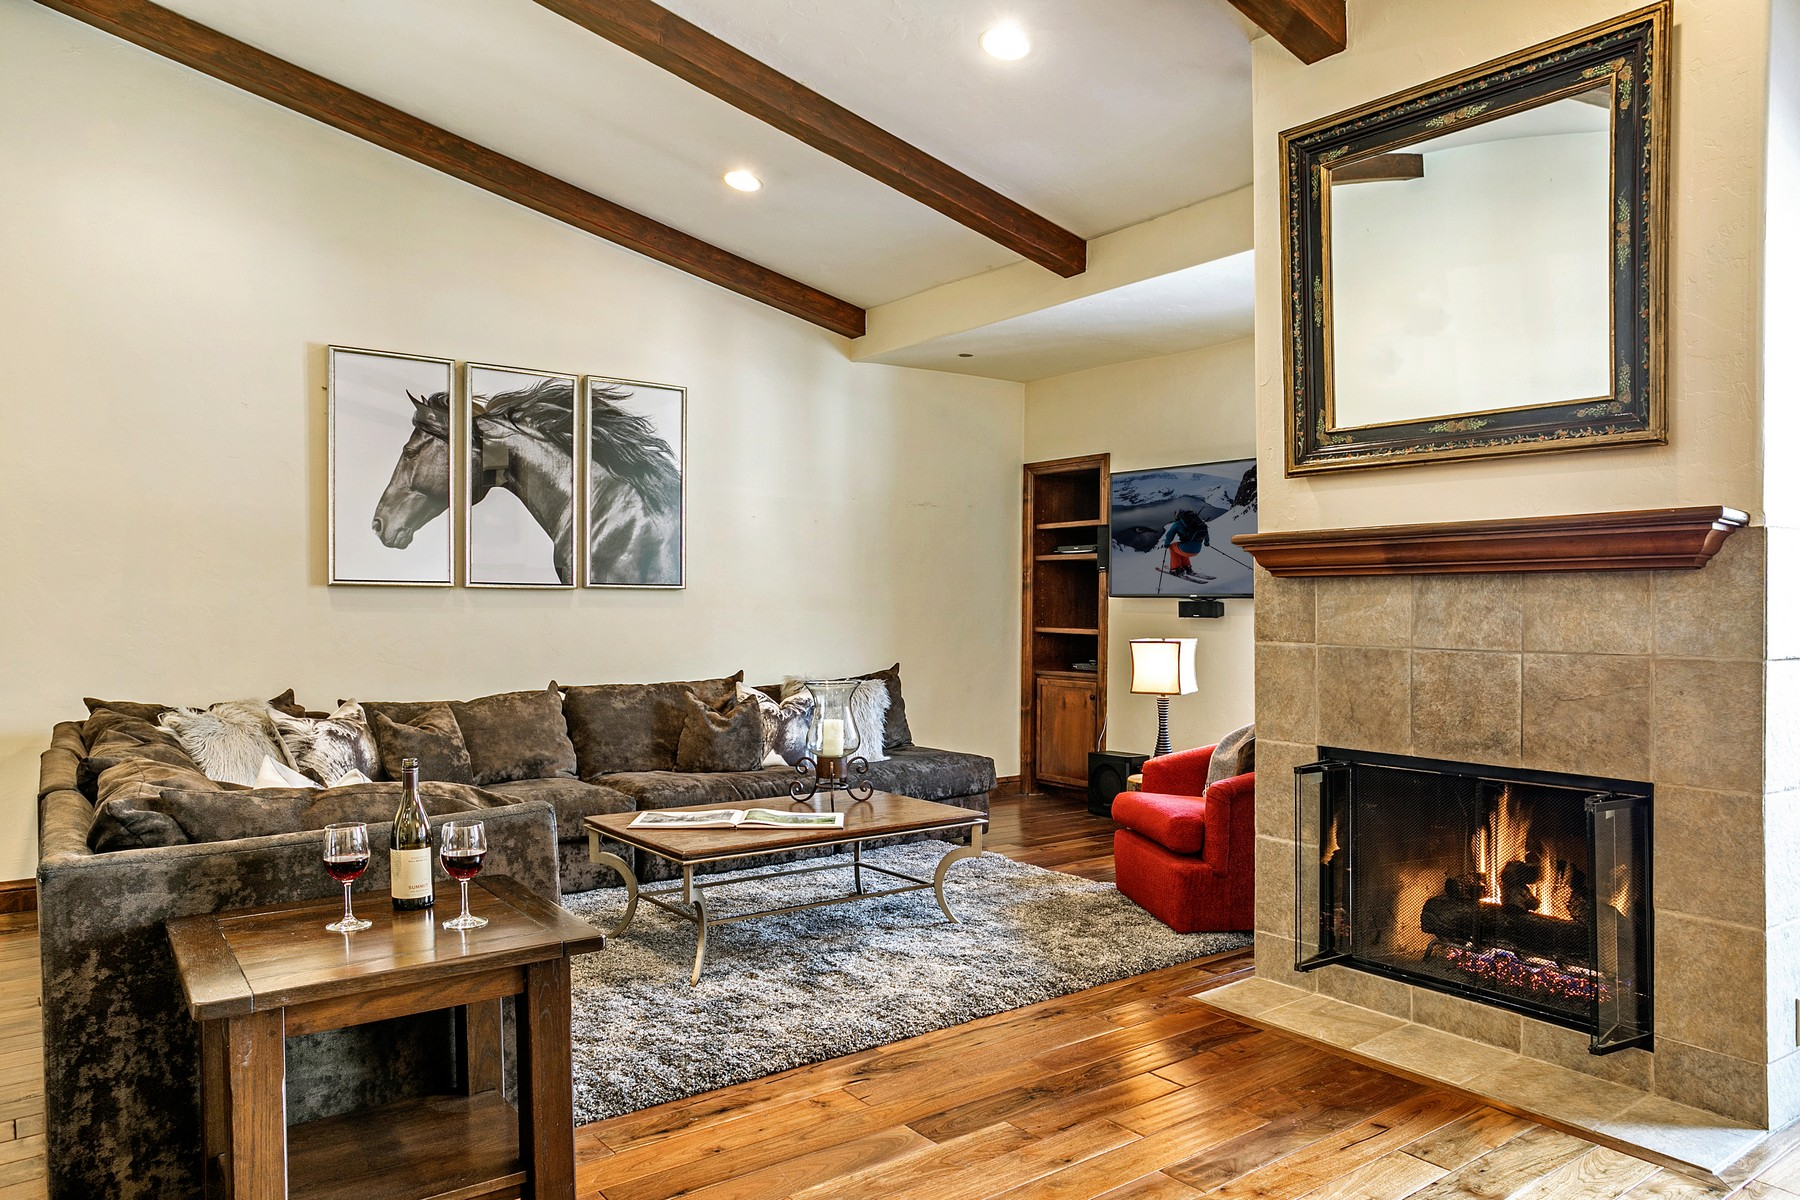 Condominium for Sale at Mountain Haus 685 292 E Meadow Dr, #685, Vail Village, Vail, Colorado, 81657 United States